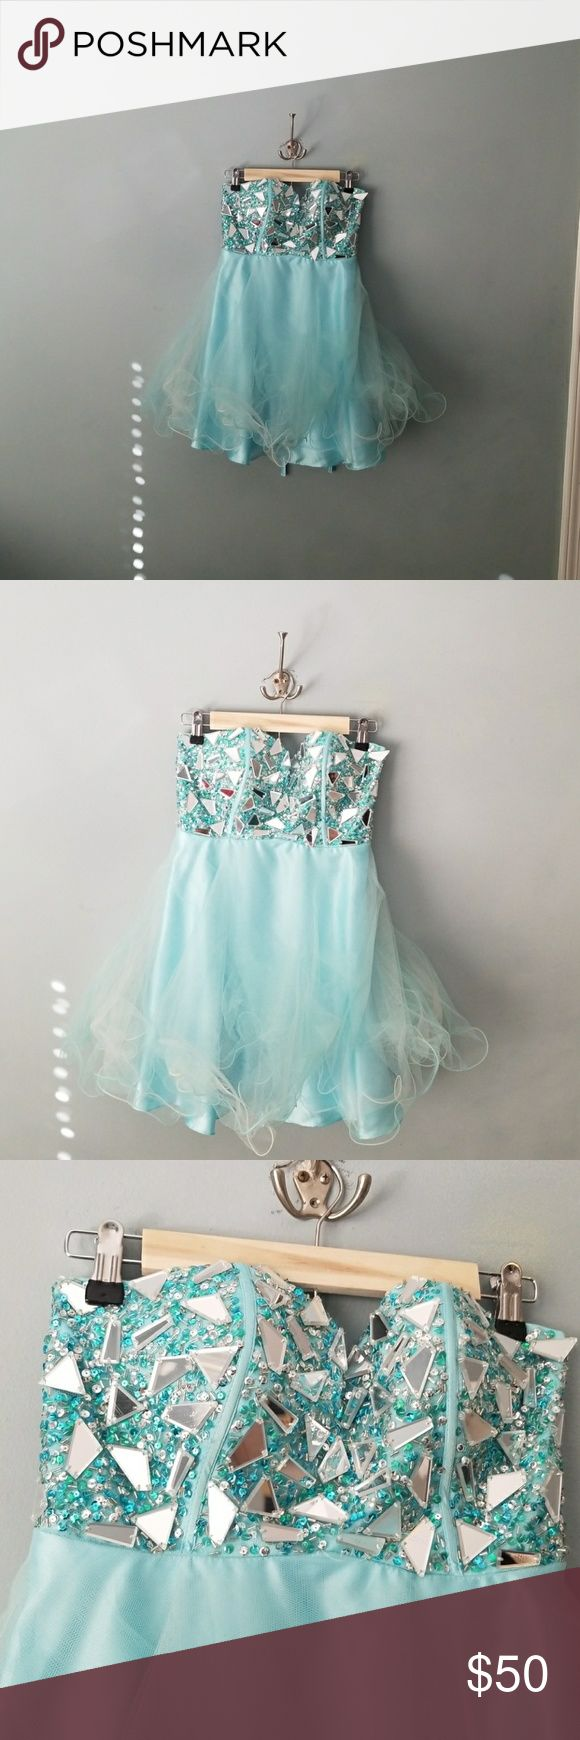 Homecoming dress Have your little princess look like a cupcake! This fun and flirty blue sparkling mini dress with all the frills will surely be a hit . May need to be dry cleaned has been in storage a while and looks like there may be some sunless tanner on the inside which you can't see when wearing price reflects Dresses